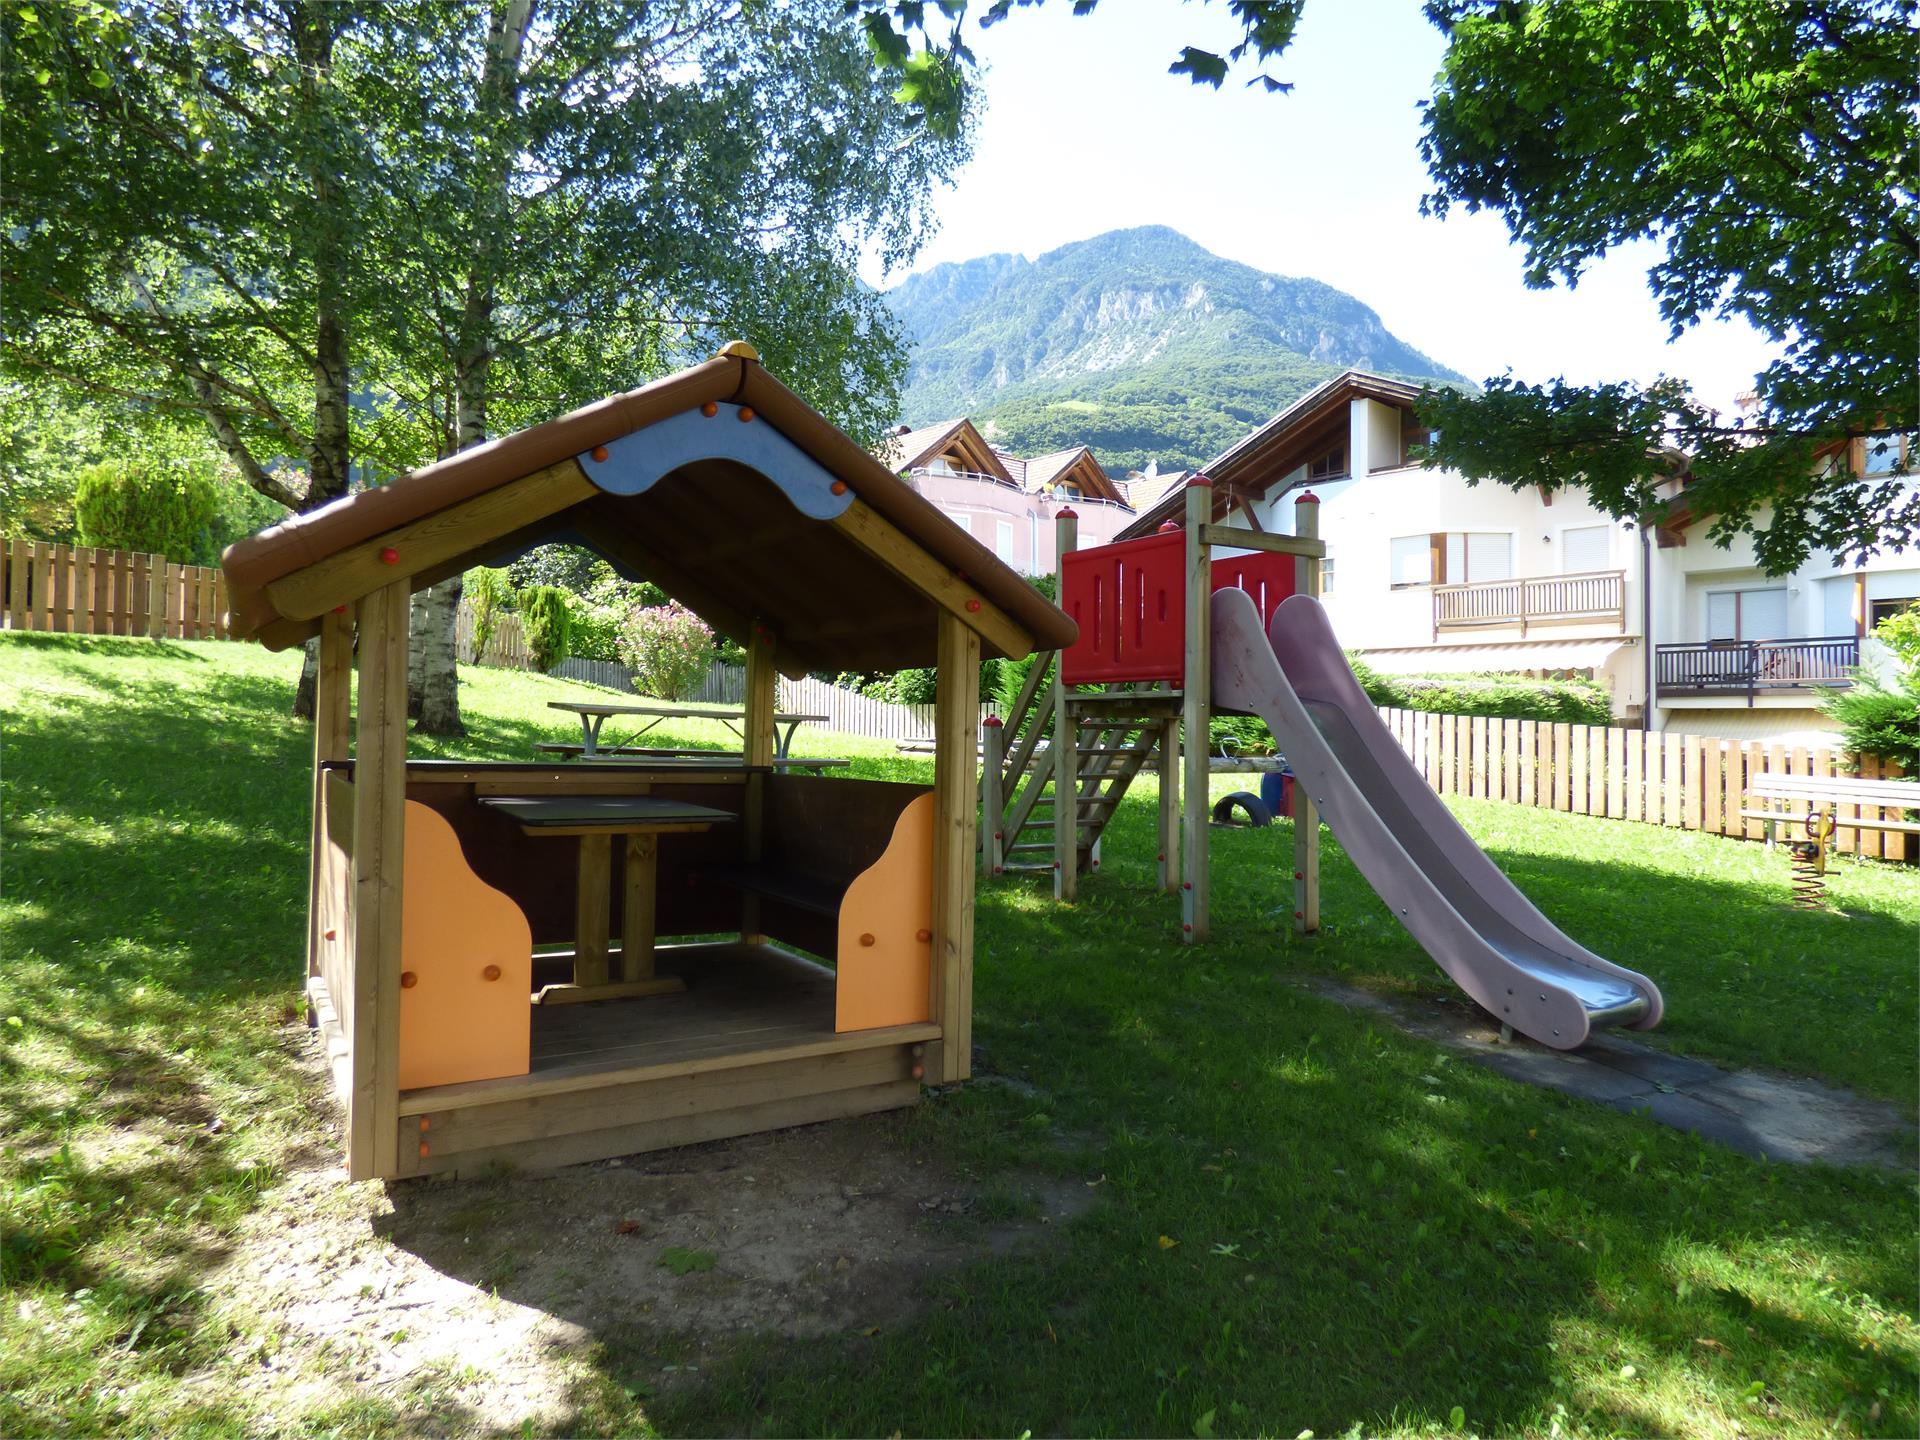 Children's playground near the Restaurant Schießstand